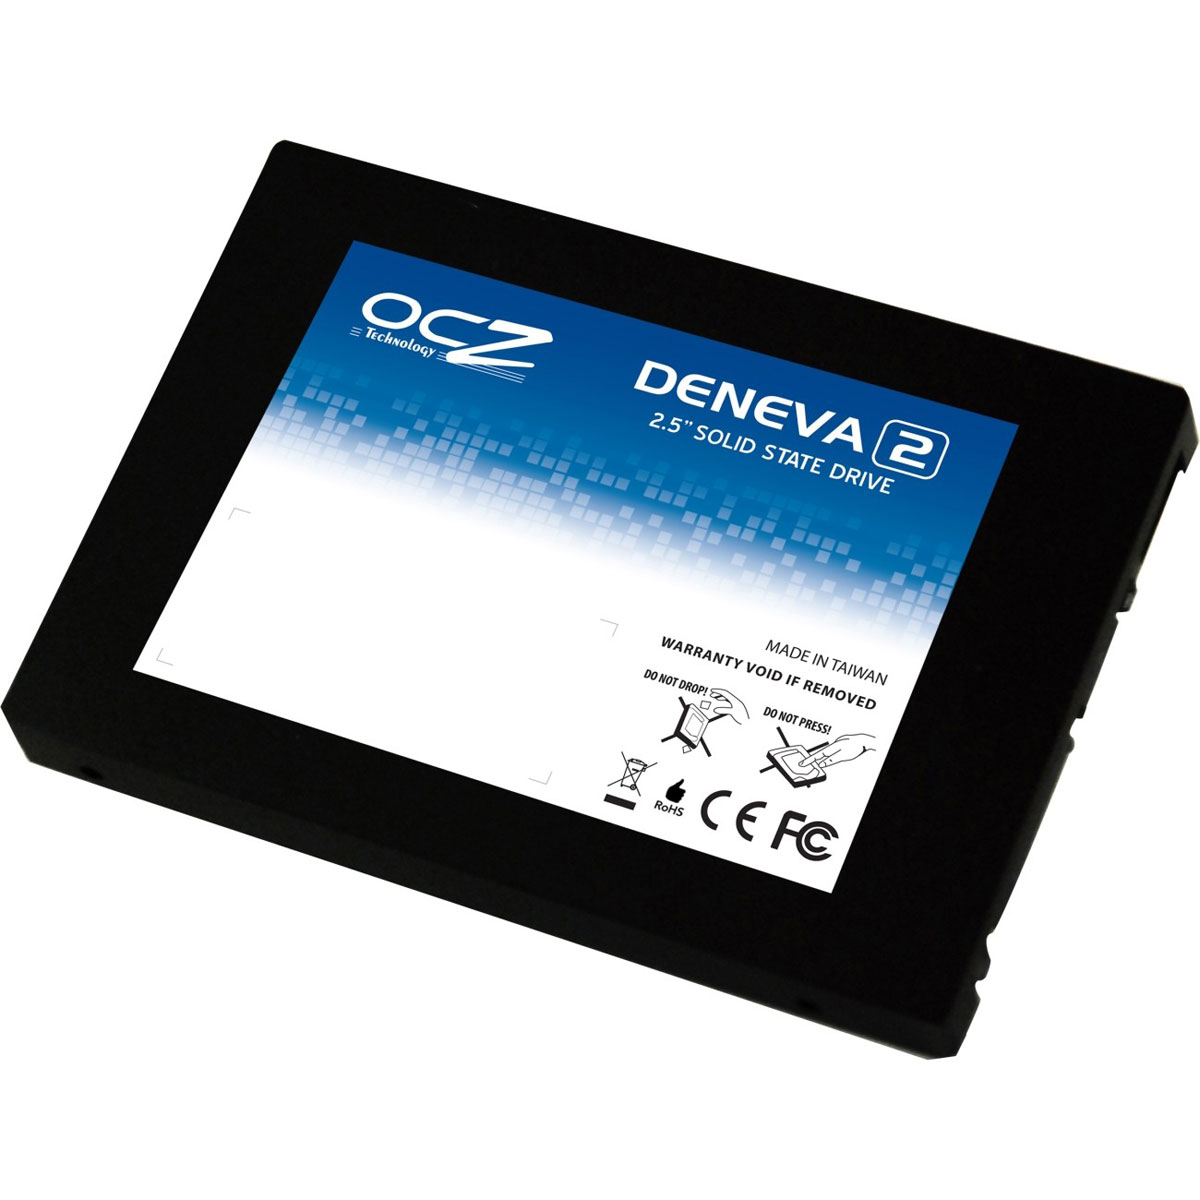 ocz deneva 2 c sync 120 go sata 6gb s disque ssd ocz storage solutions sur. Black Bedroom Furniture Sets. Home Design Ideas